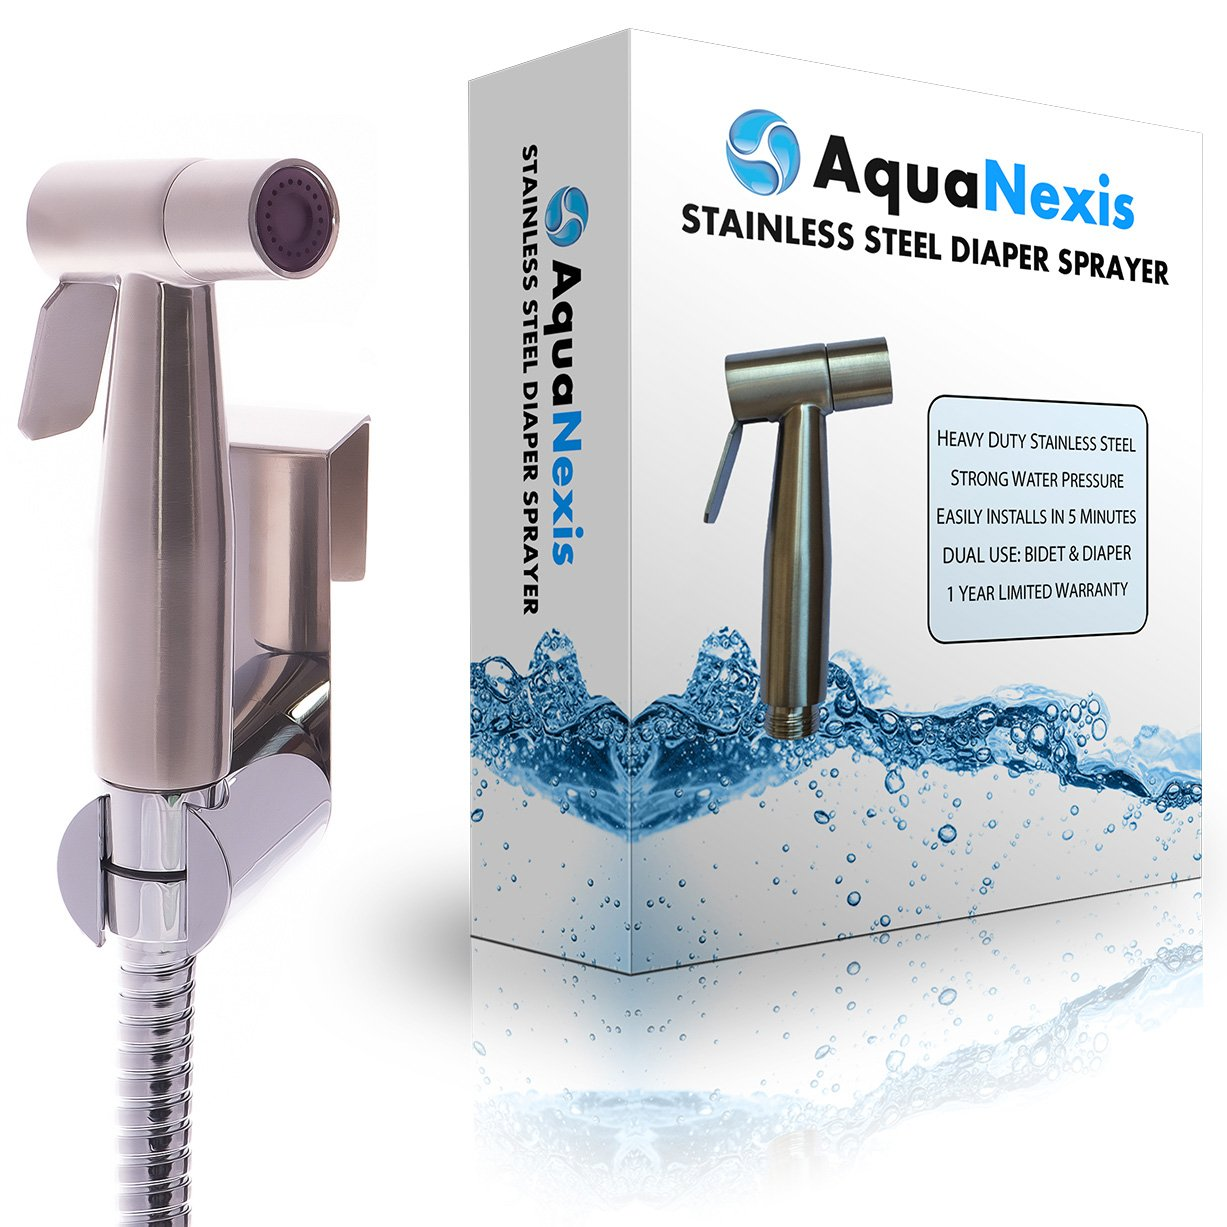 Aqua Nexis Cloth Diaper Sprayer - Premium Stainless Steel Toilet Sprayer